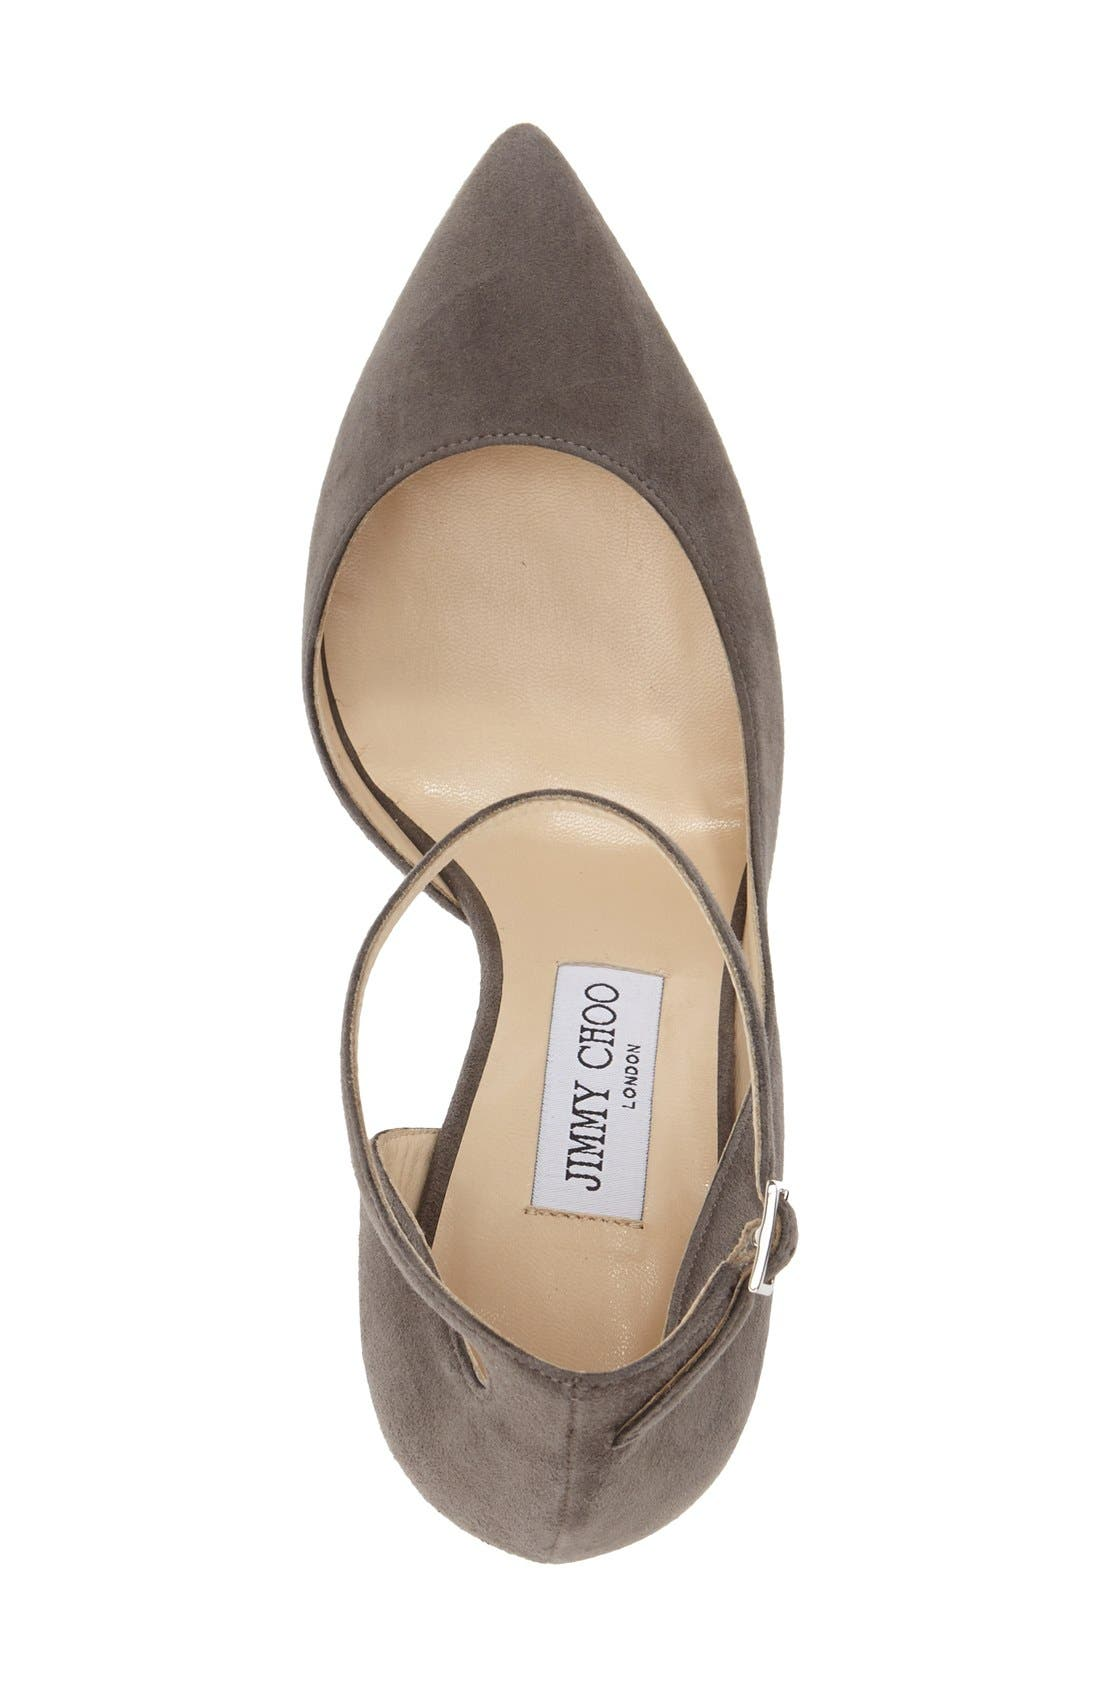 'Lucy' Half d'Orsay Pointy Toe Pump,                             Alternate thumbnail 3, color,                             Taupe Grey Suede